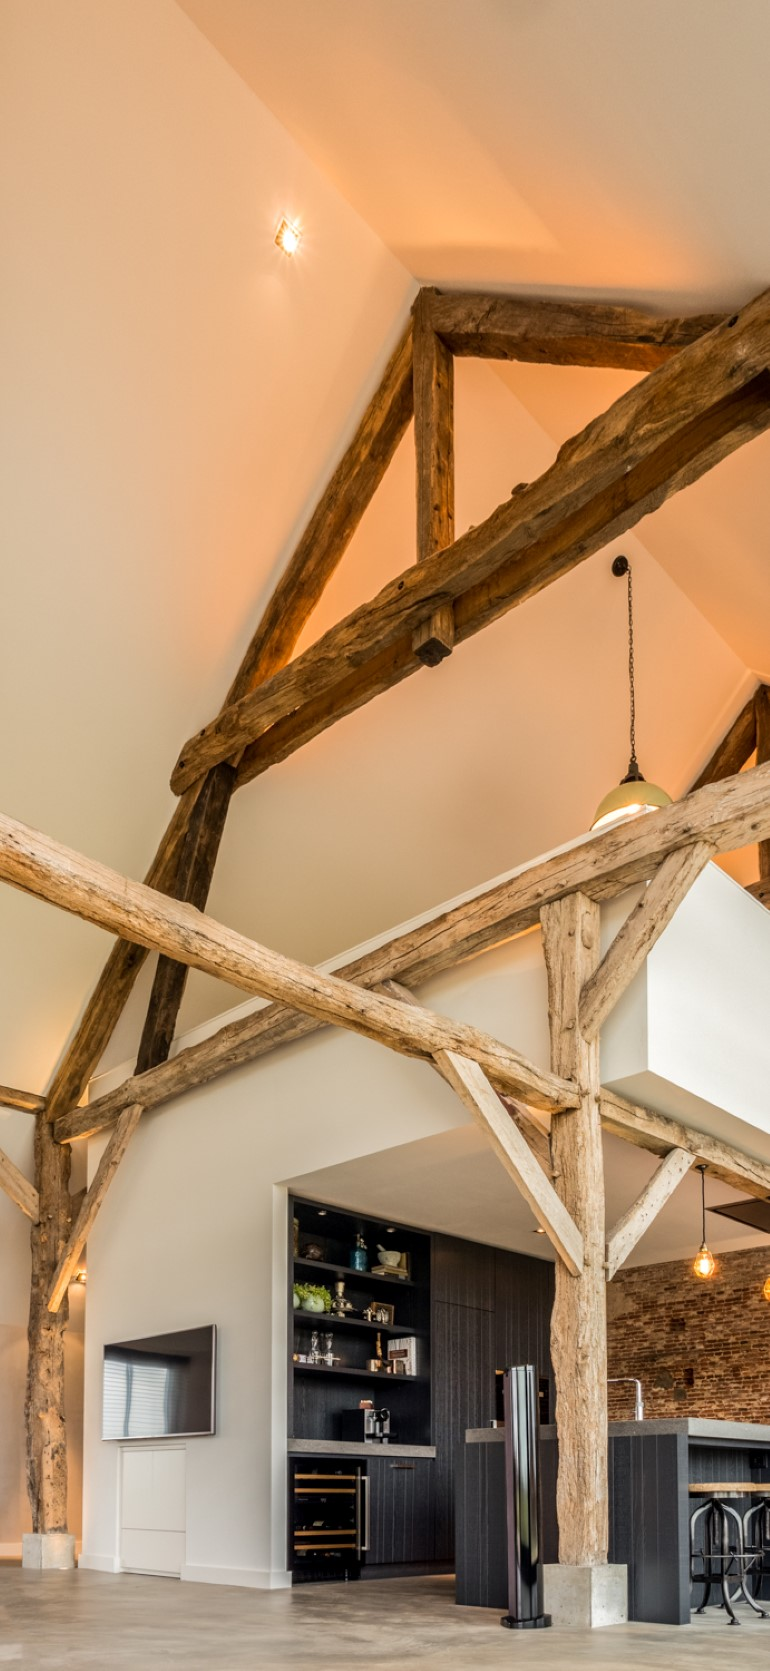 Old Dutch Farm Renovated with Preservation of Ancient Wooden Trusses (9)